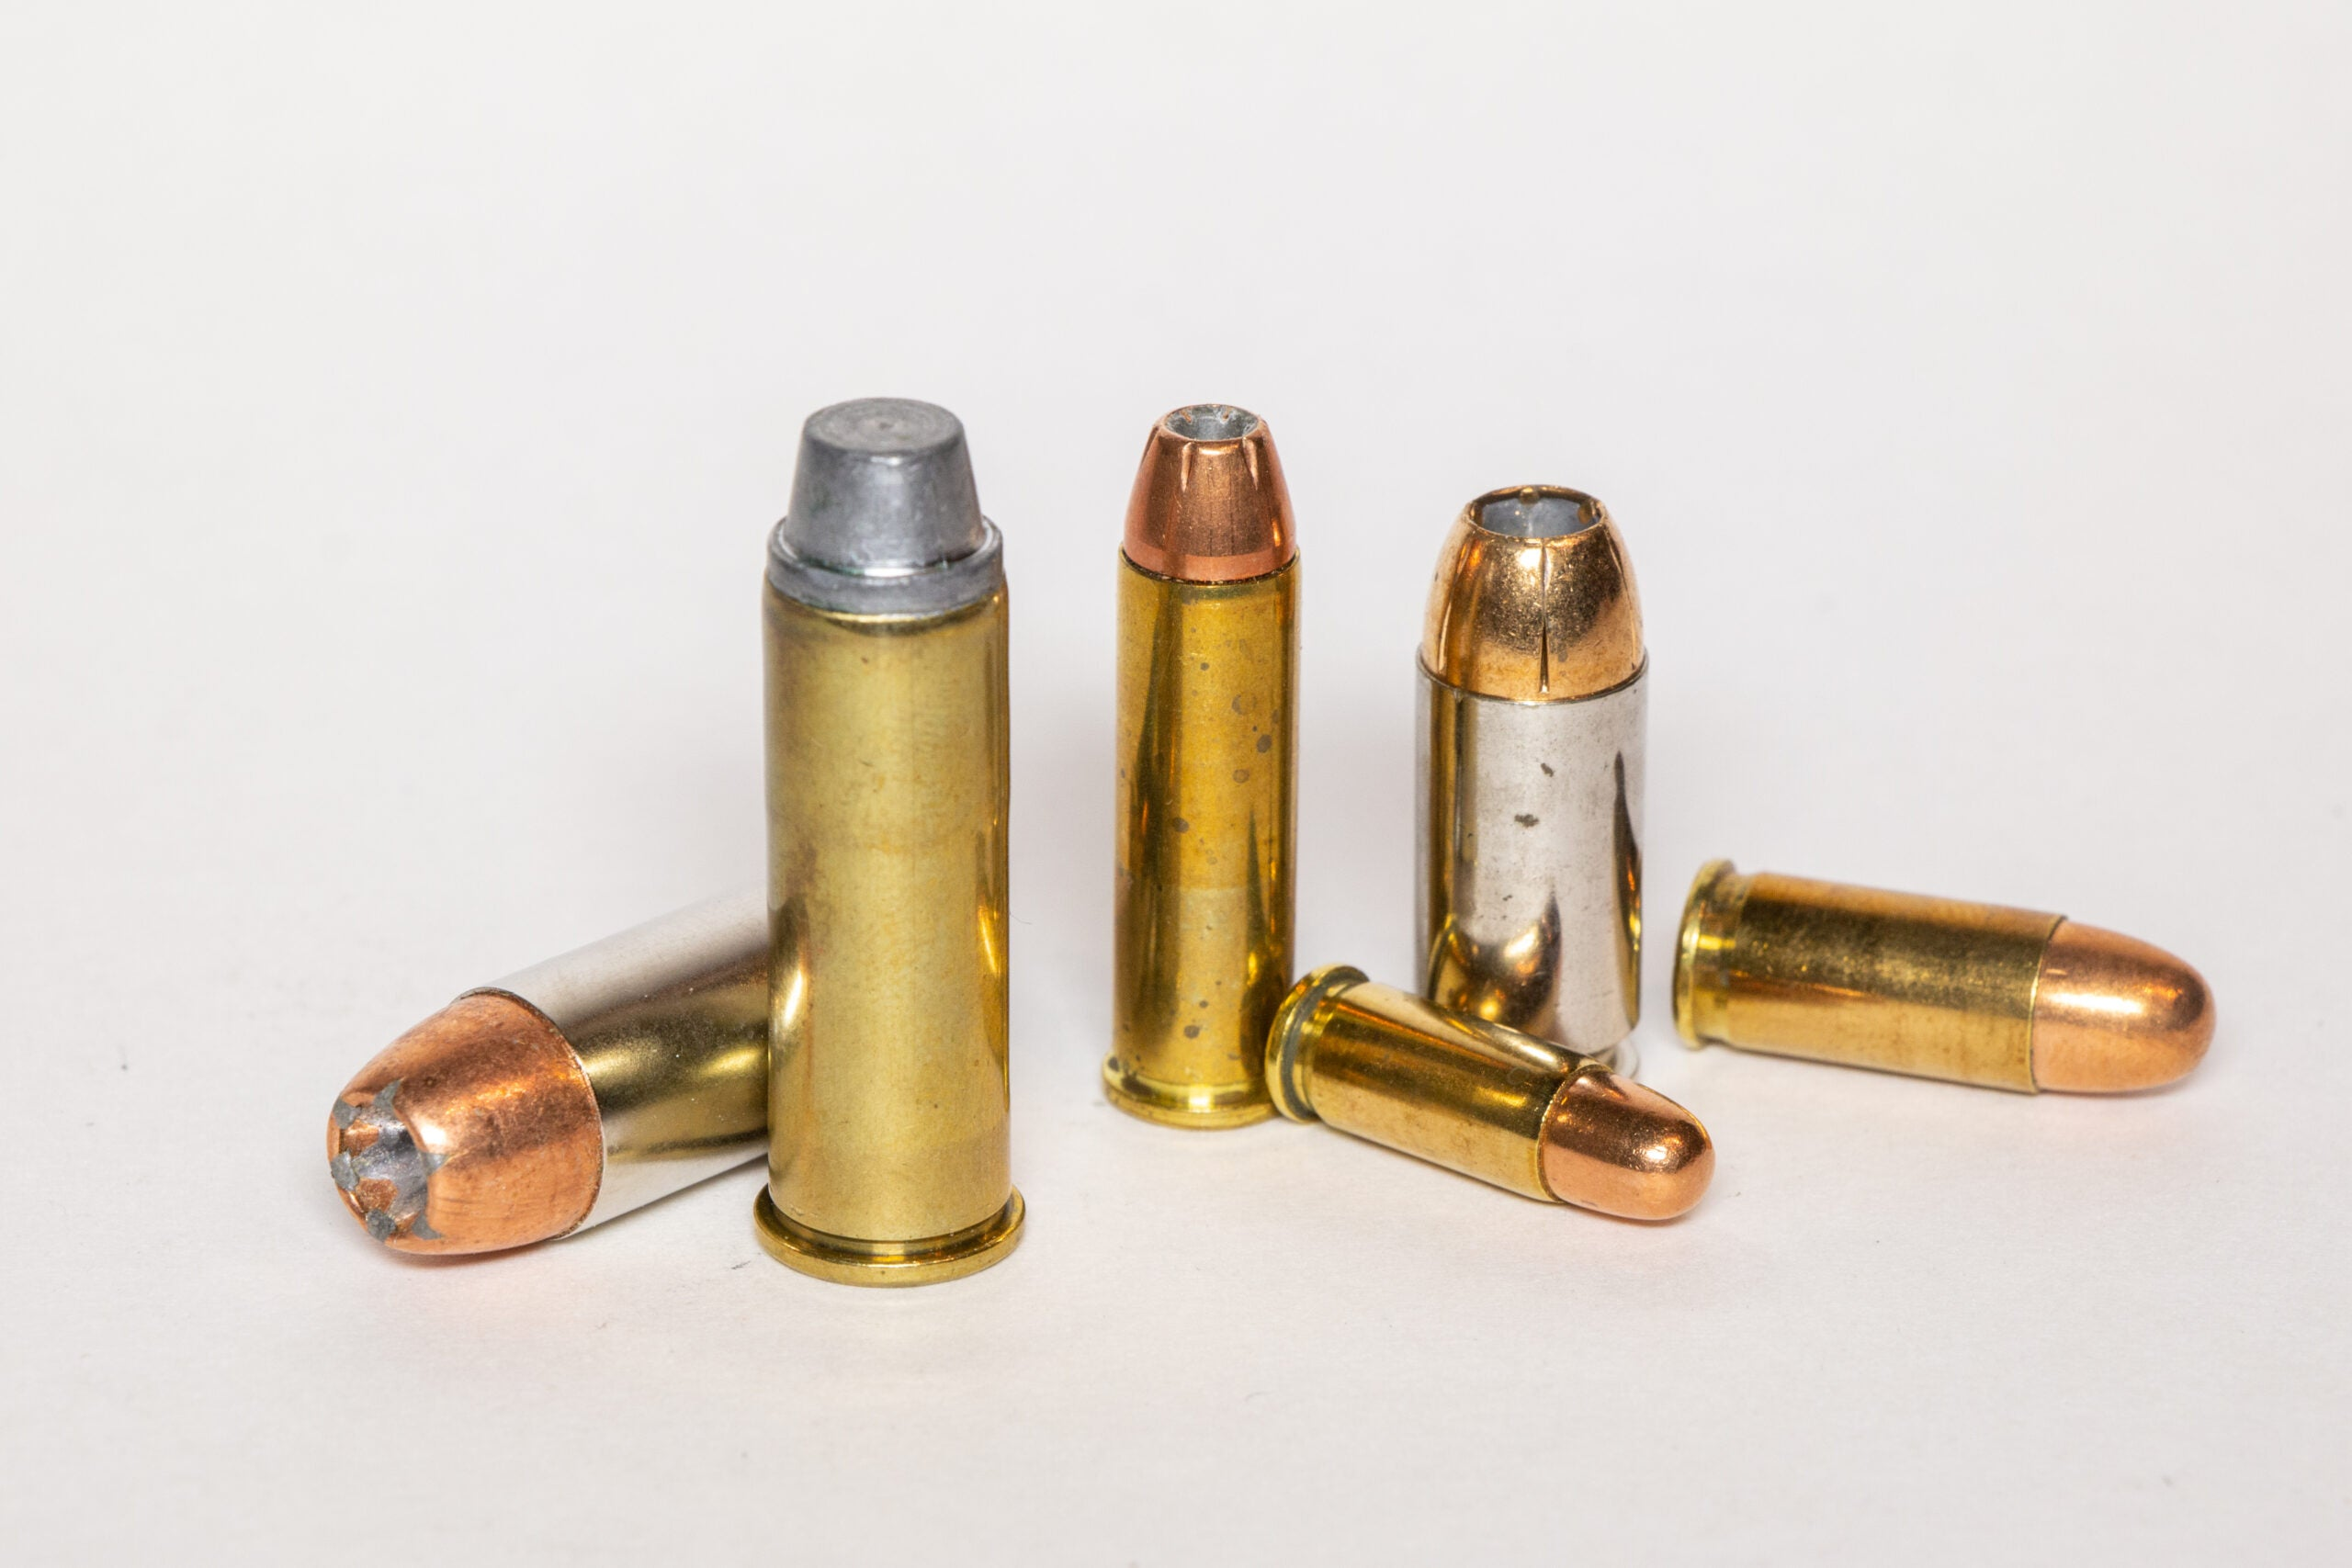 Six handgun cartridges on a white background.